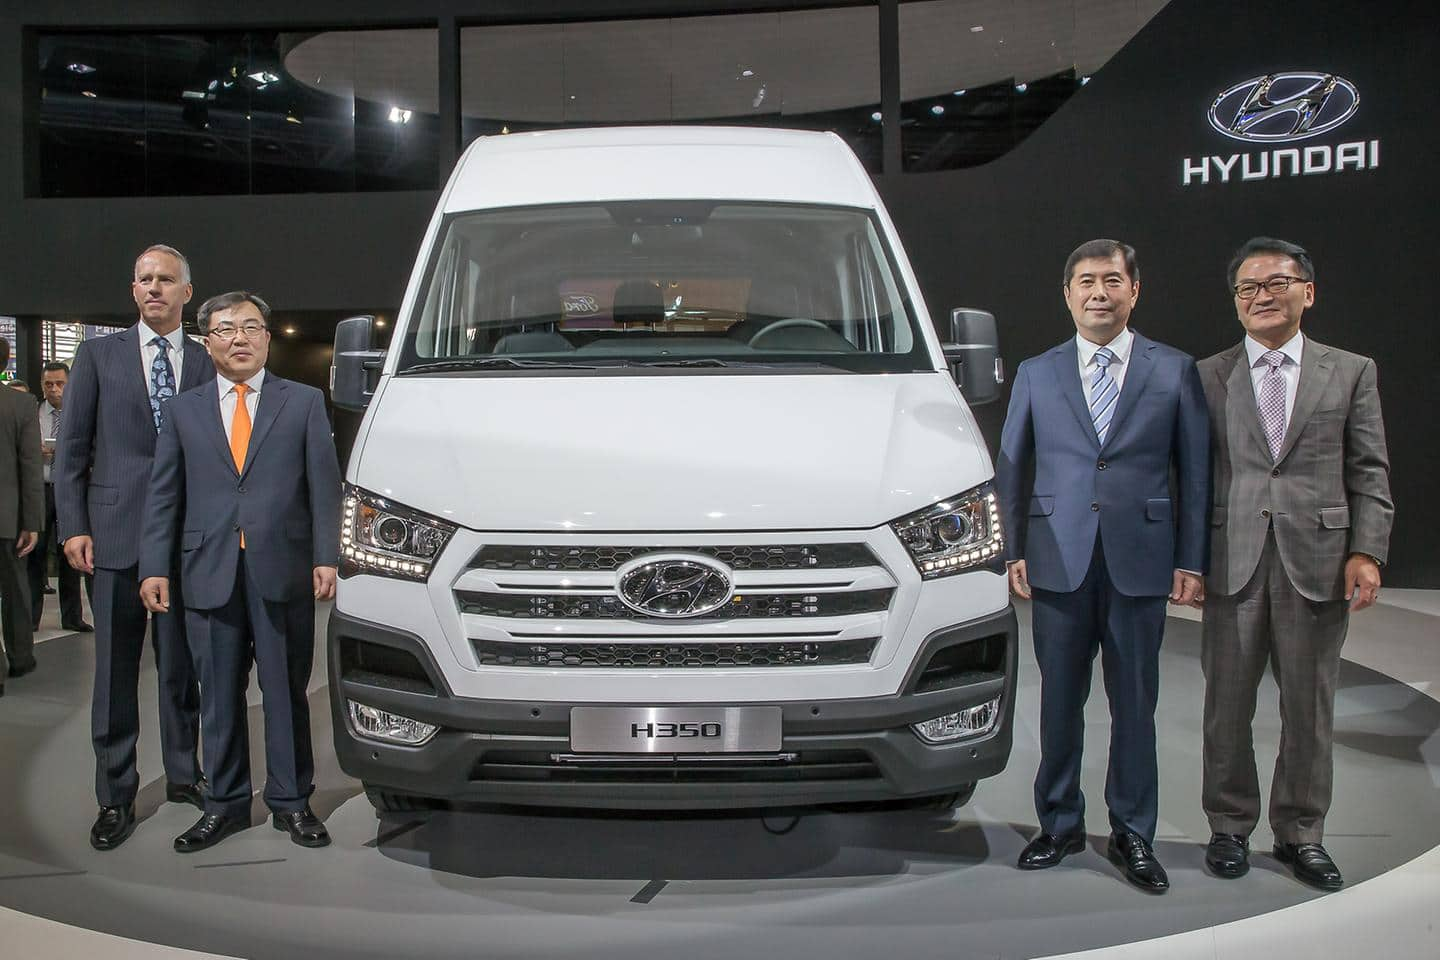 Hyundai Motor stages world premiere of H350